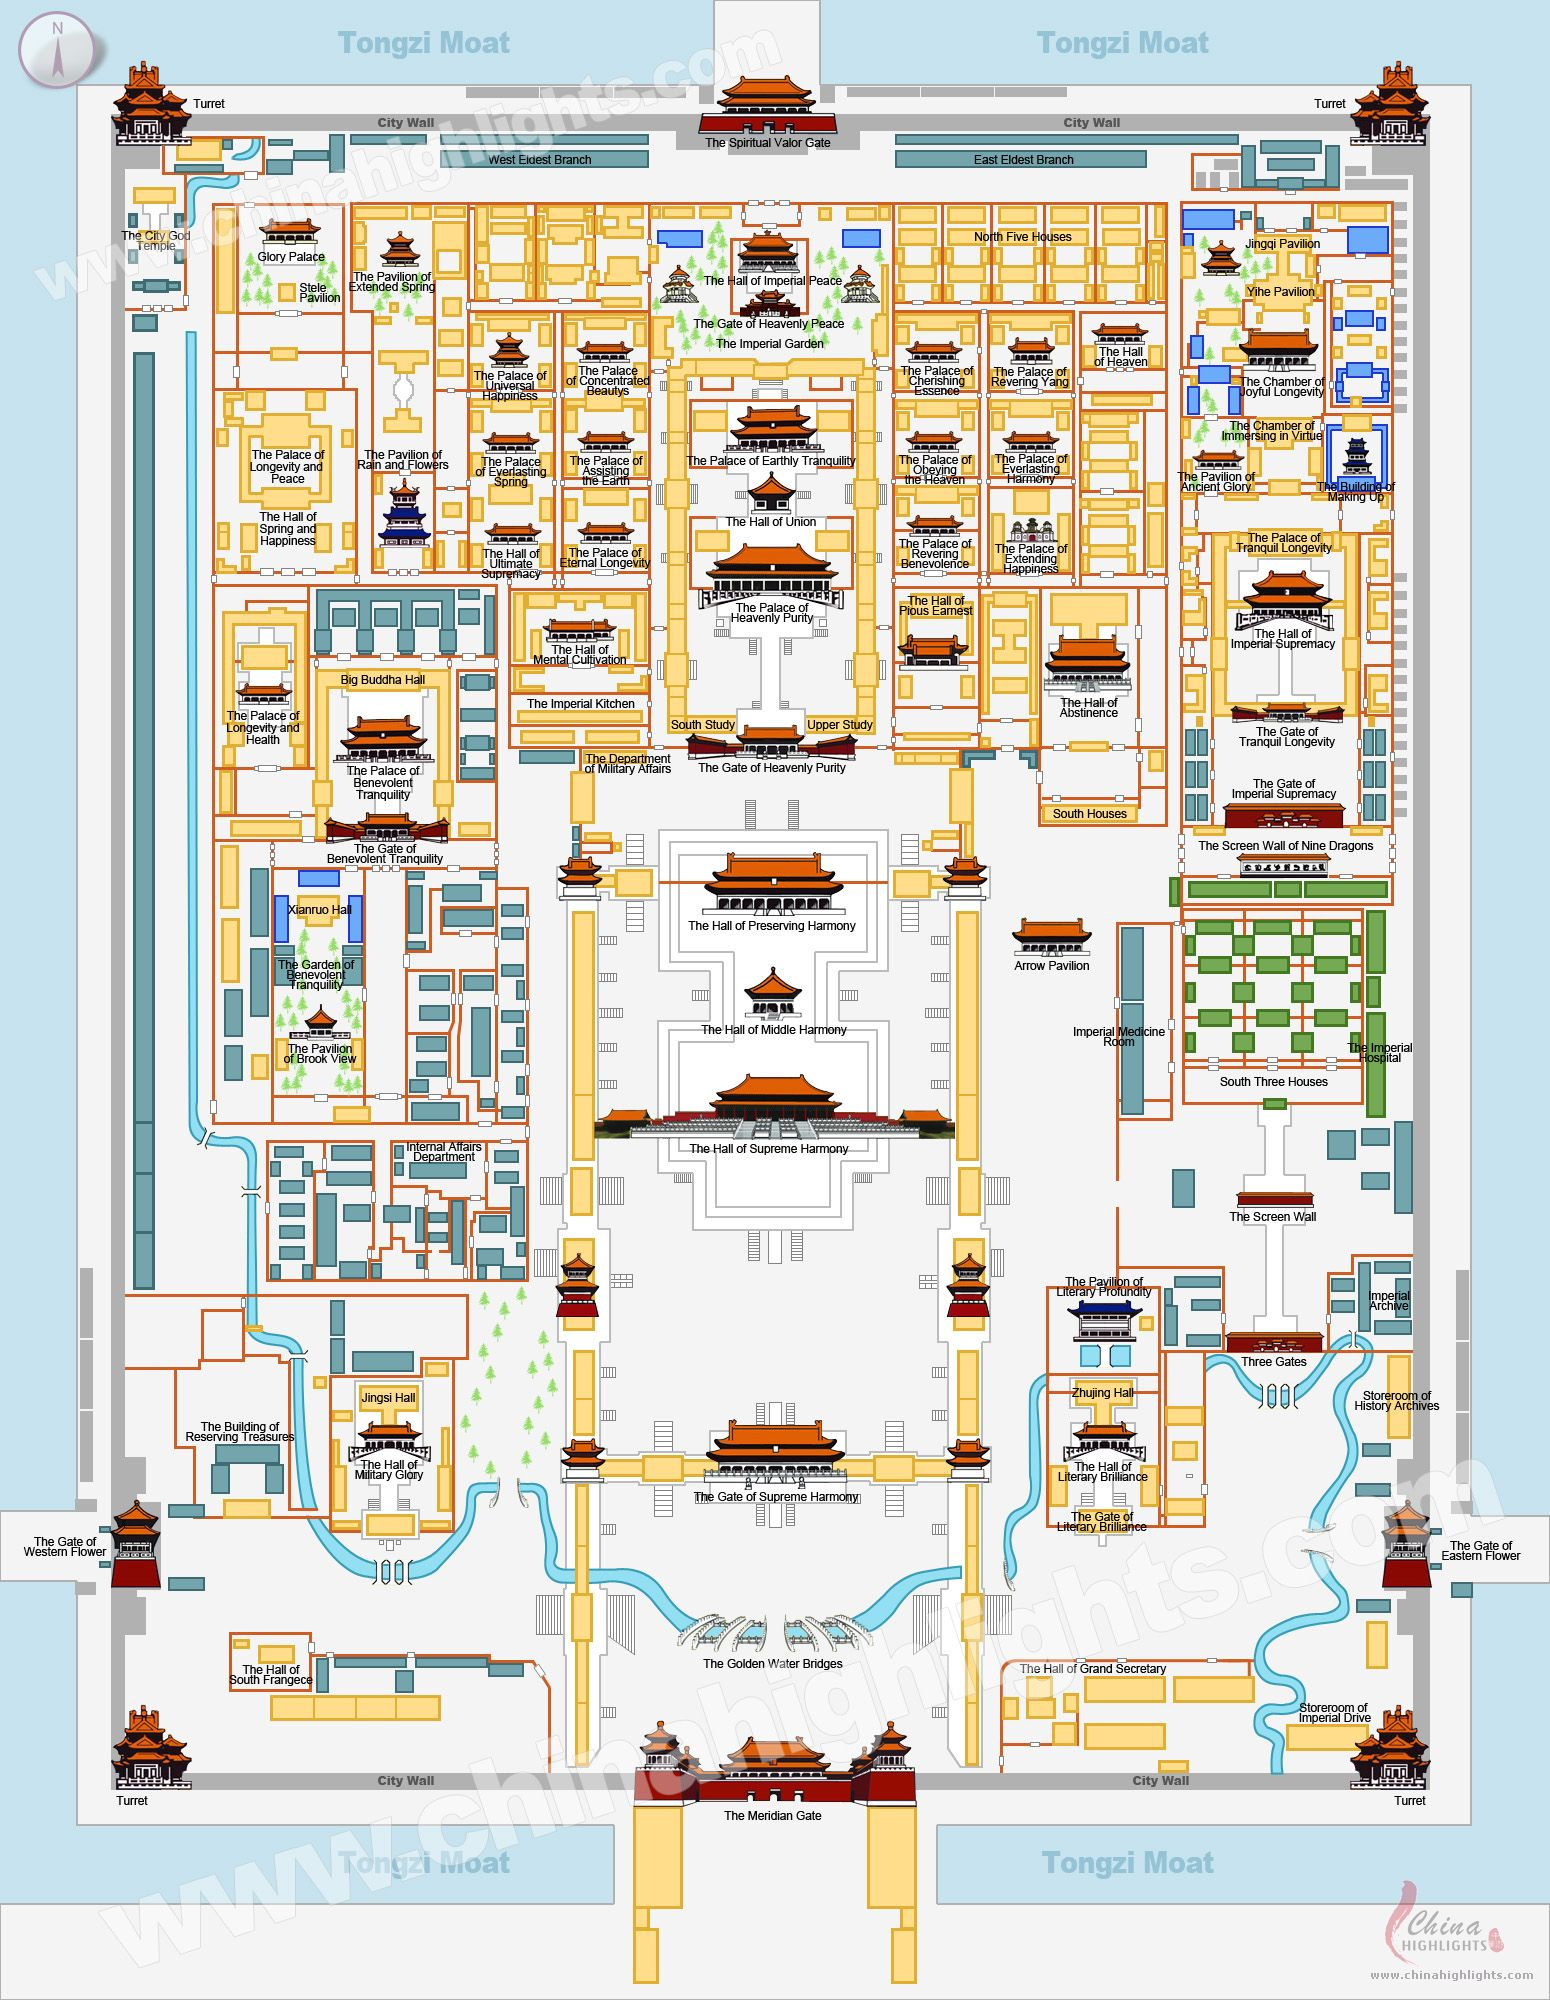 http://images.chinahighlights.com/city/beijing/the-forbidden-city-map.jpg